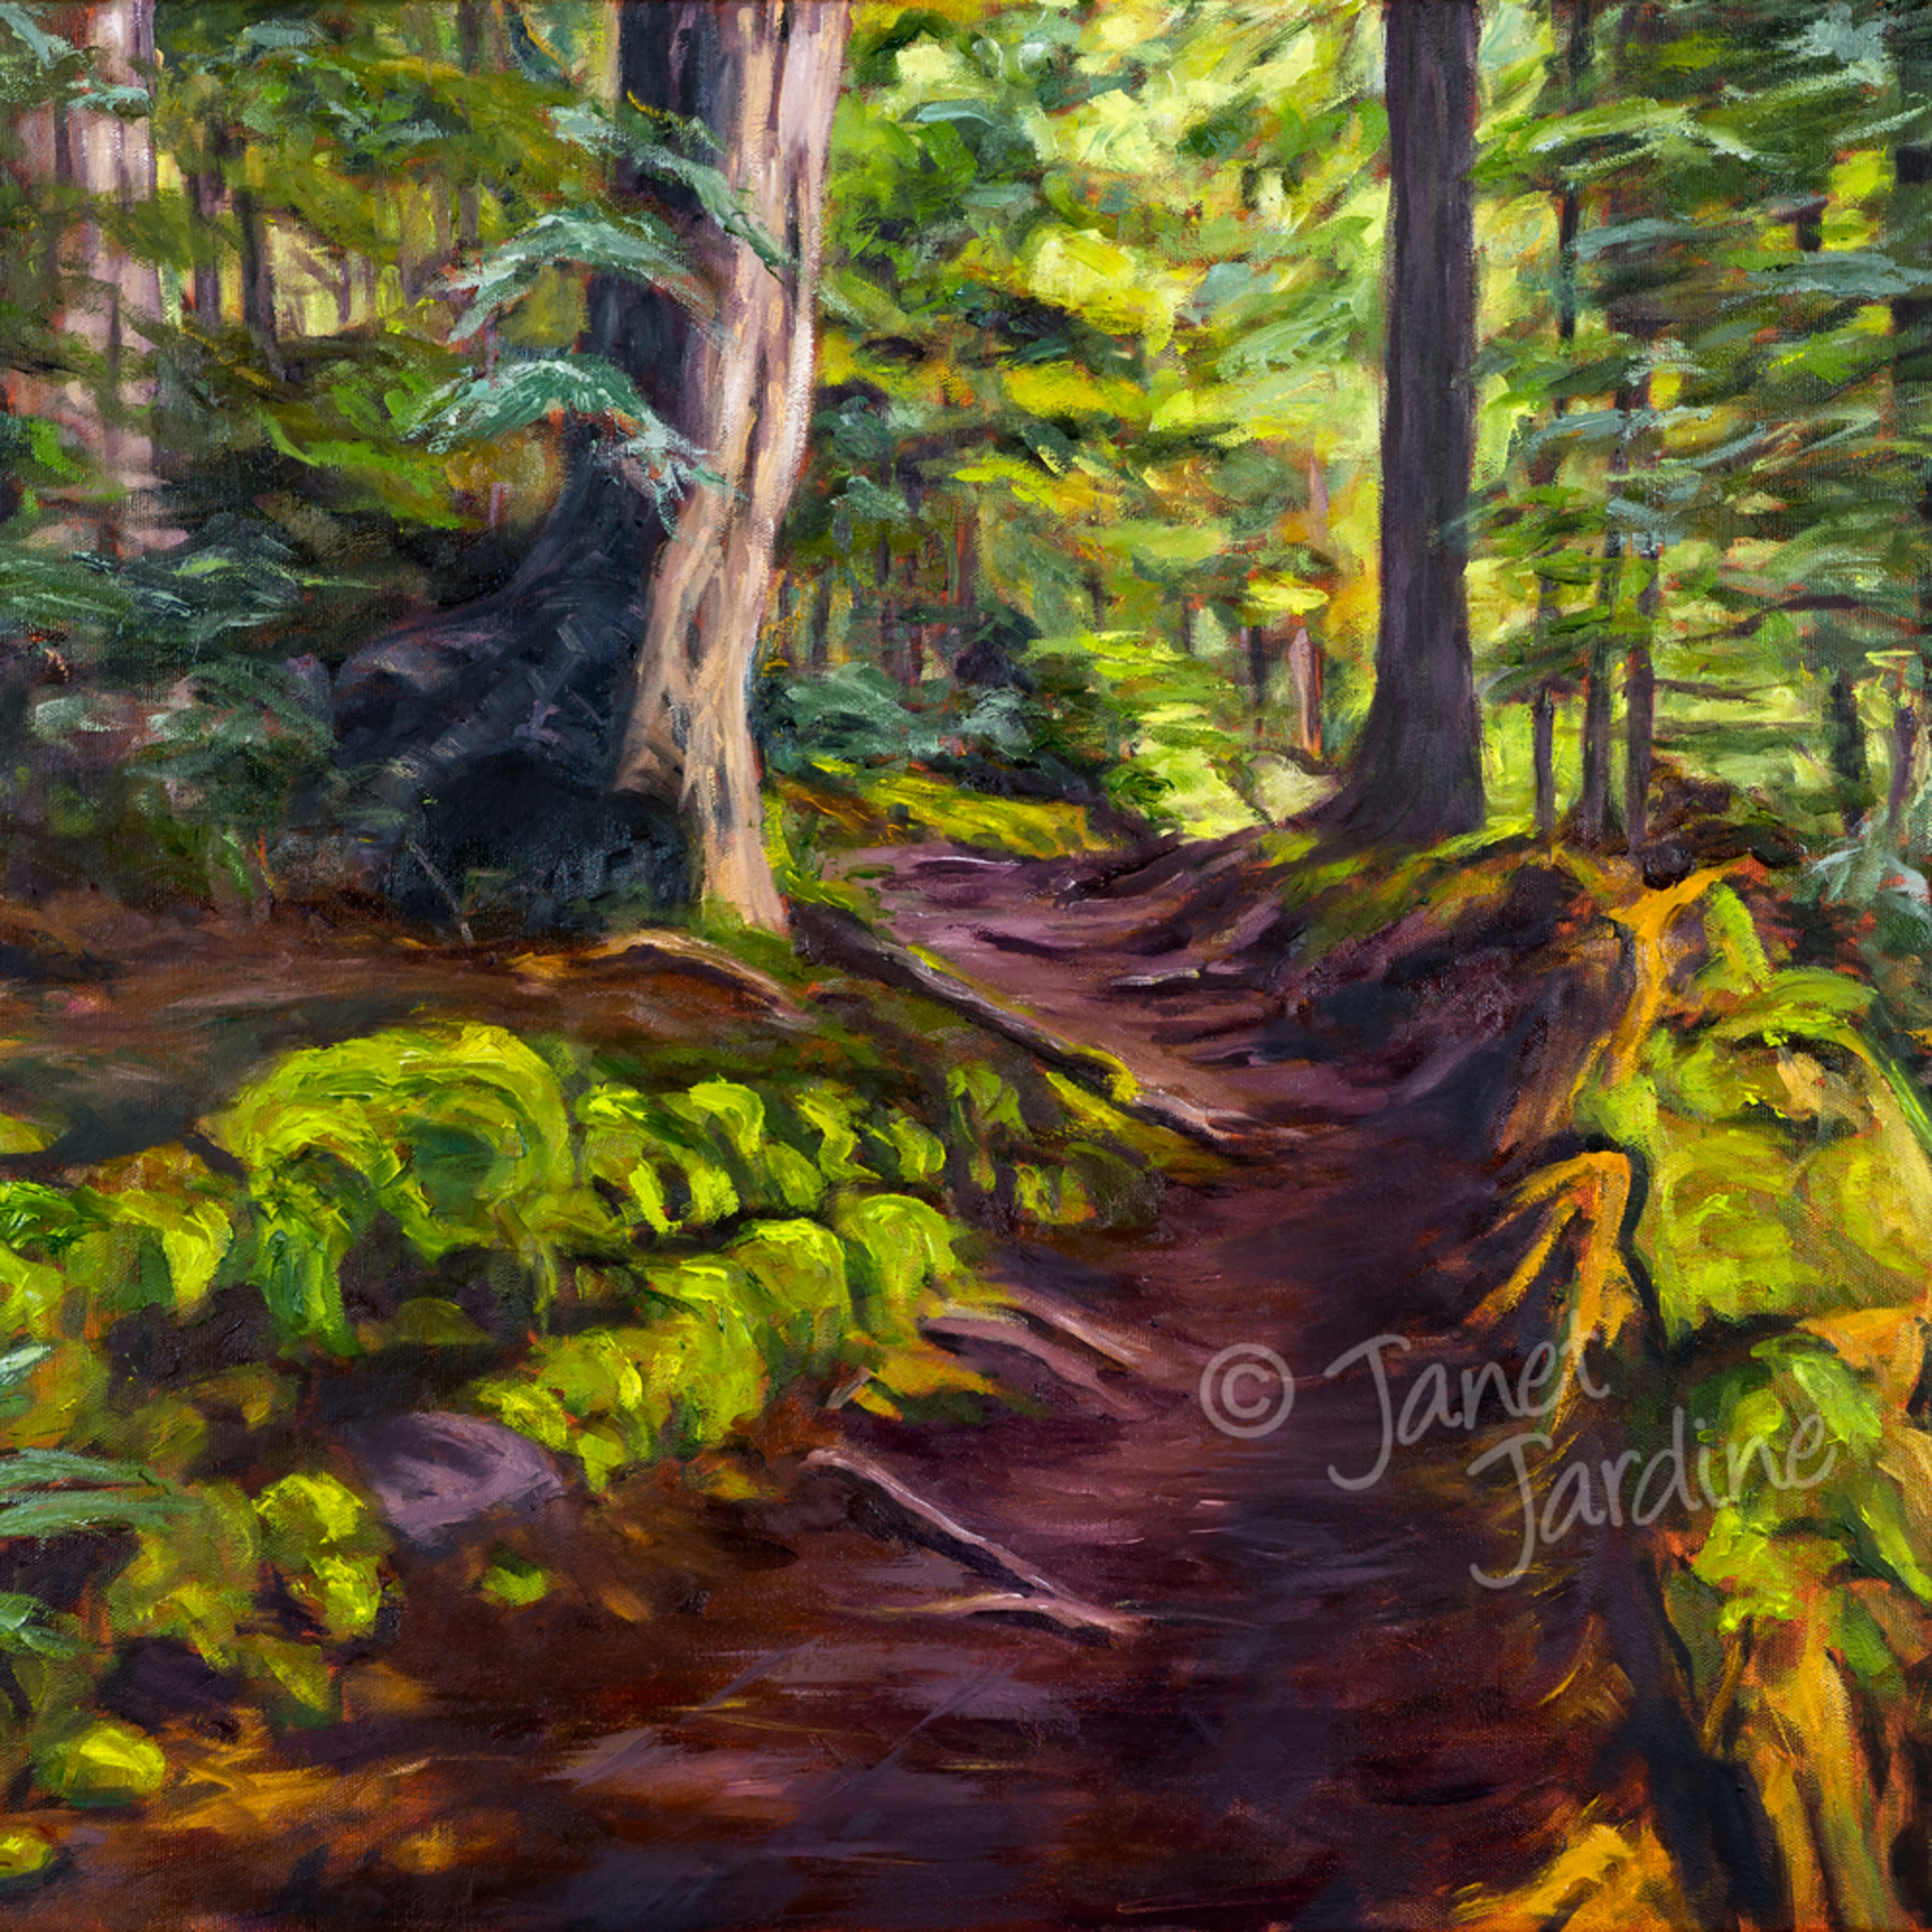 The winding path janet jardine painting asf lhlbi8